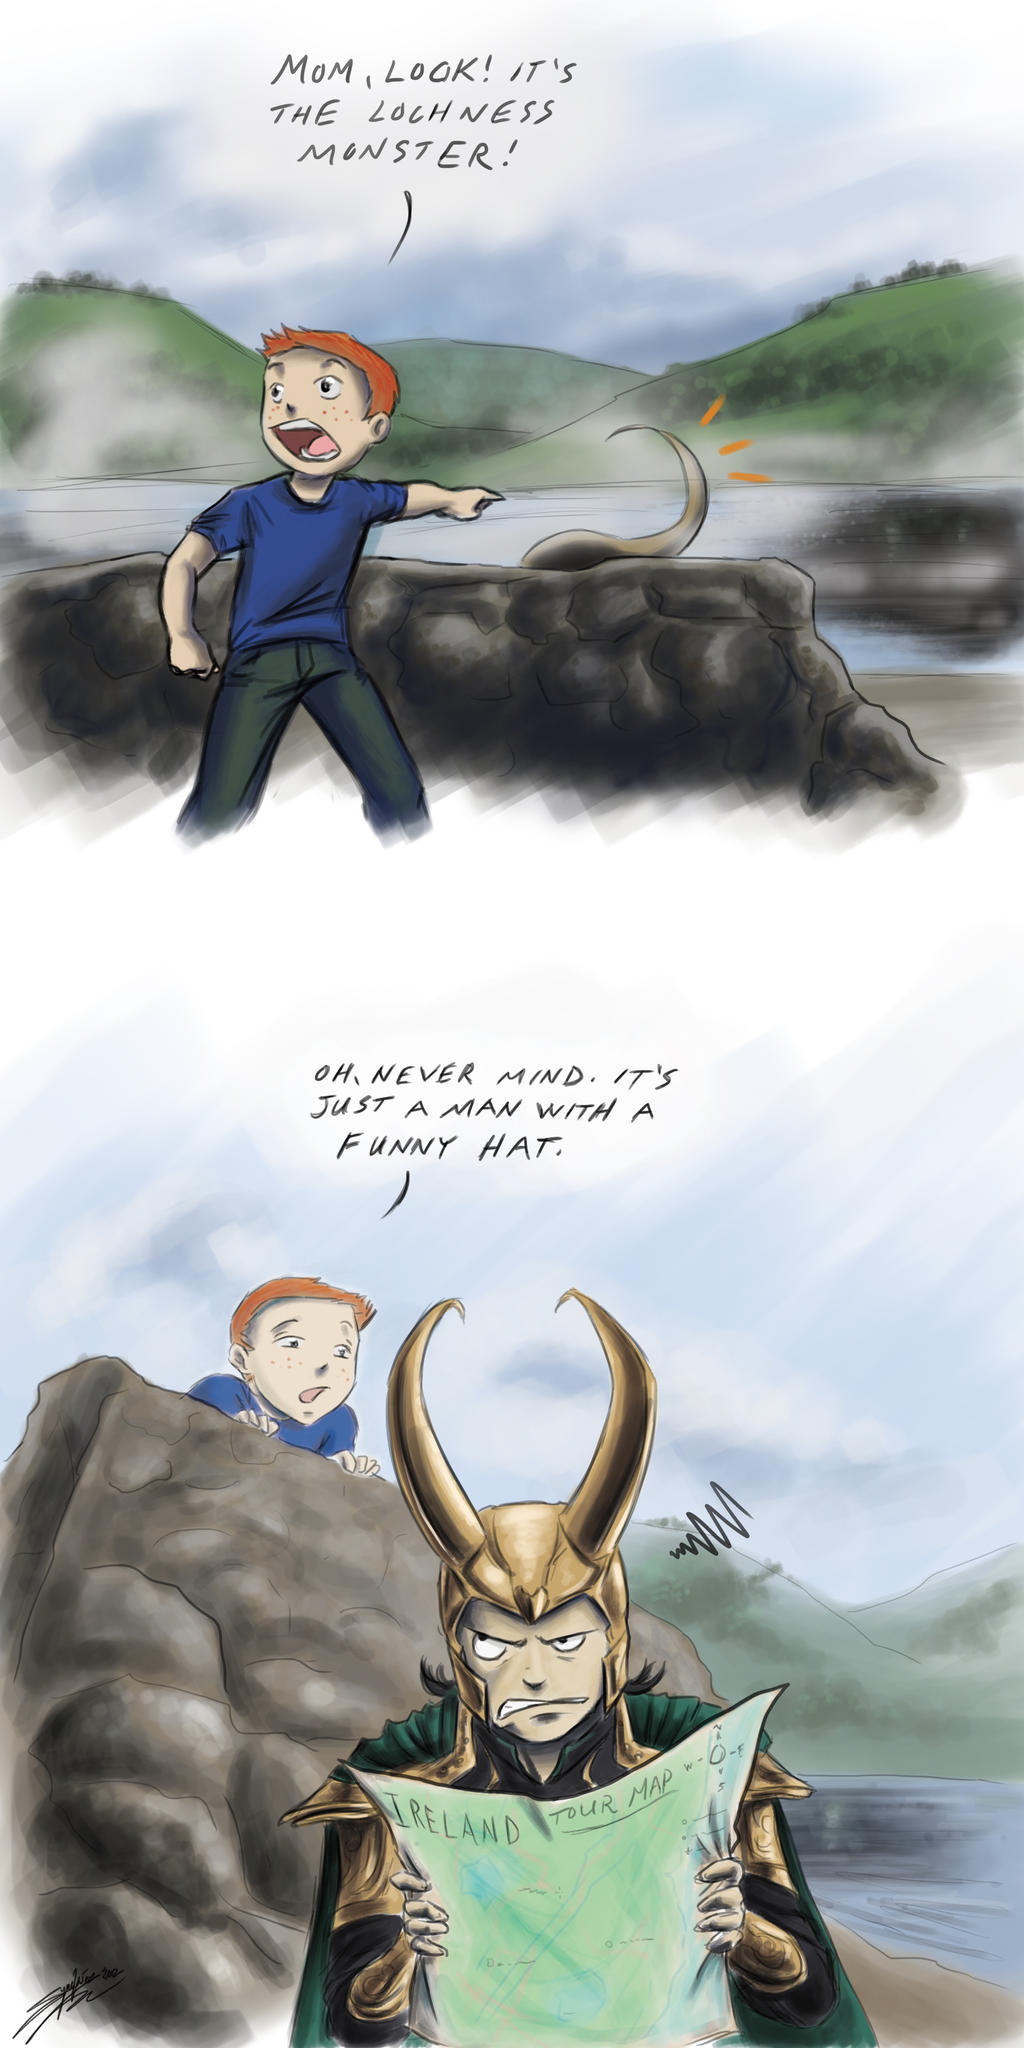 Lochness Loki by rice-claire